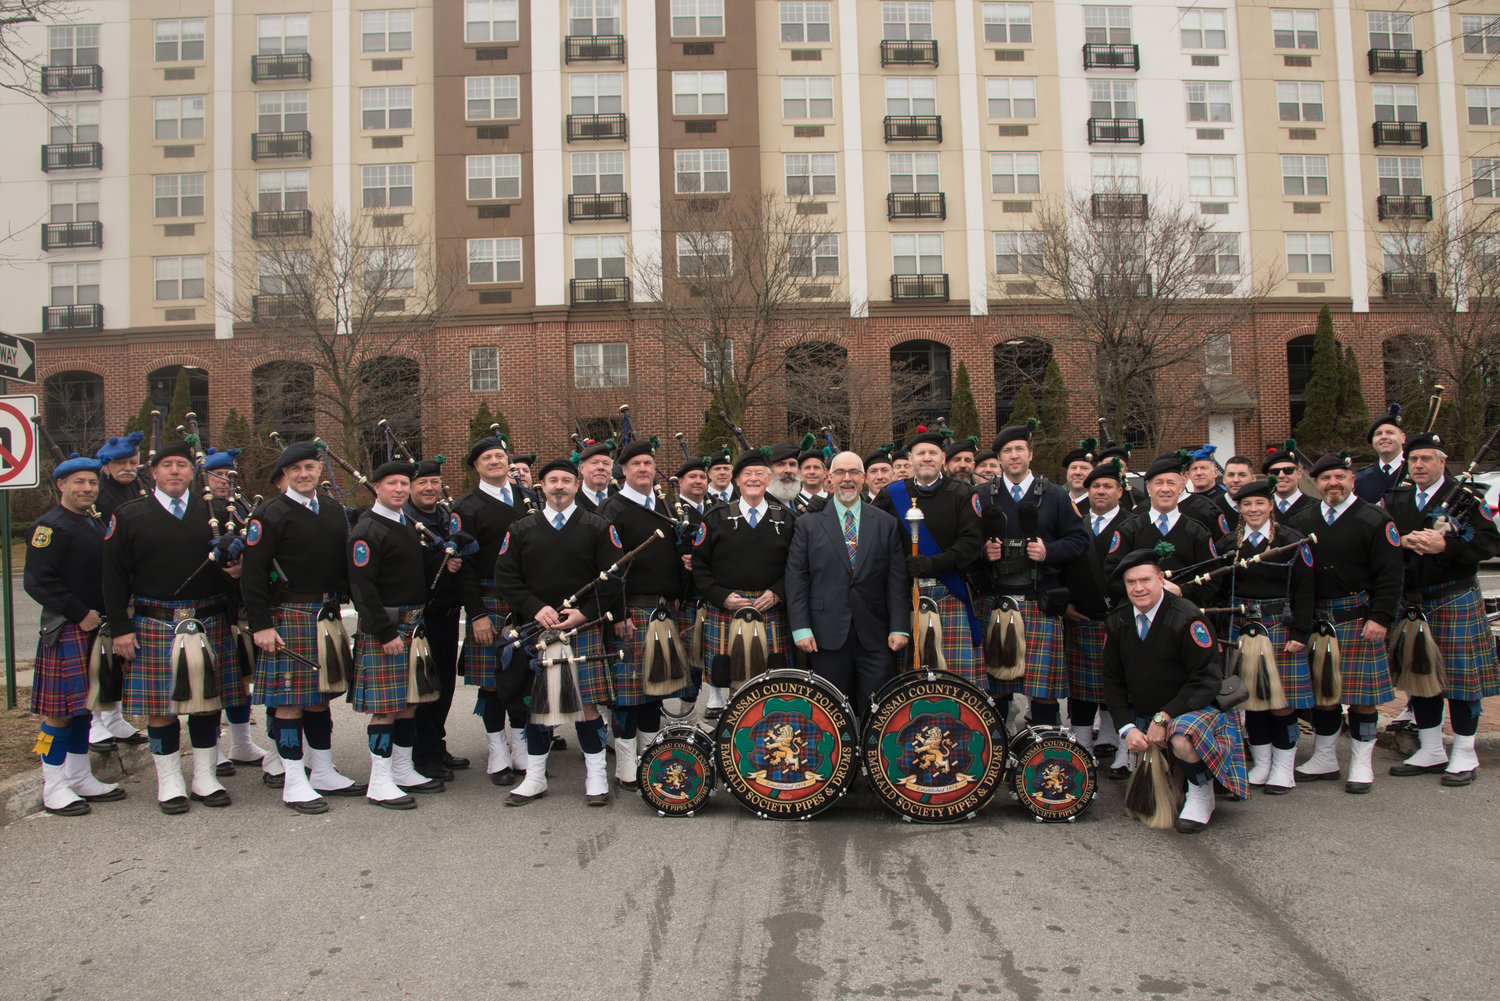 Those who attended last week's retirement ceremony for Detective Chris Albin got a taste of St. Patrick's Day, as three pipe bands played.